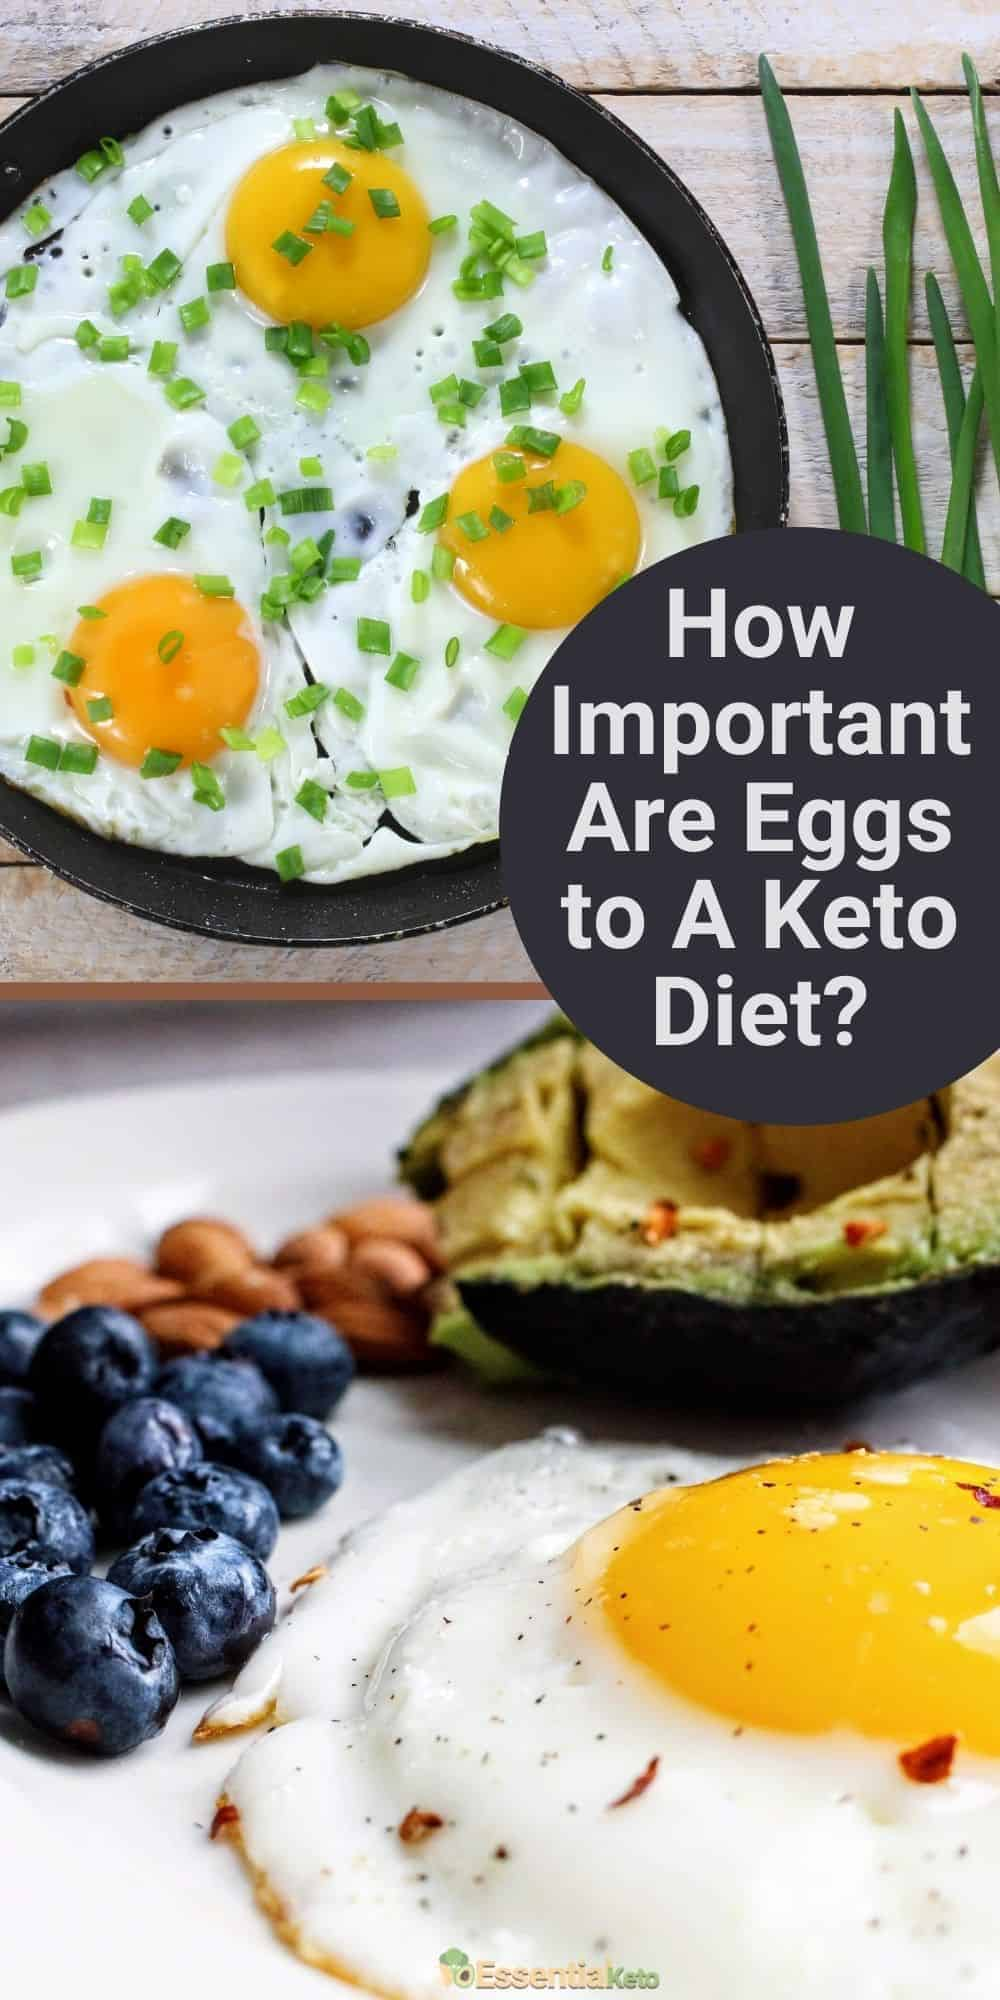 How Important Are Eggs to A Keto Diet